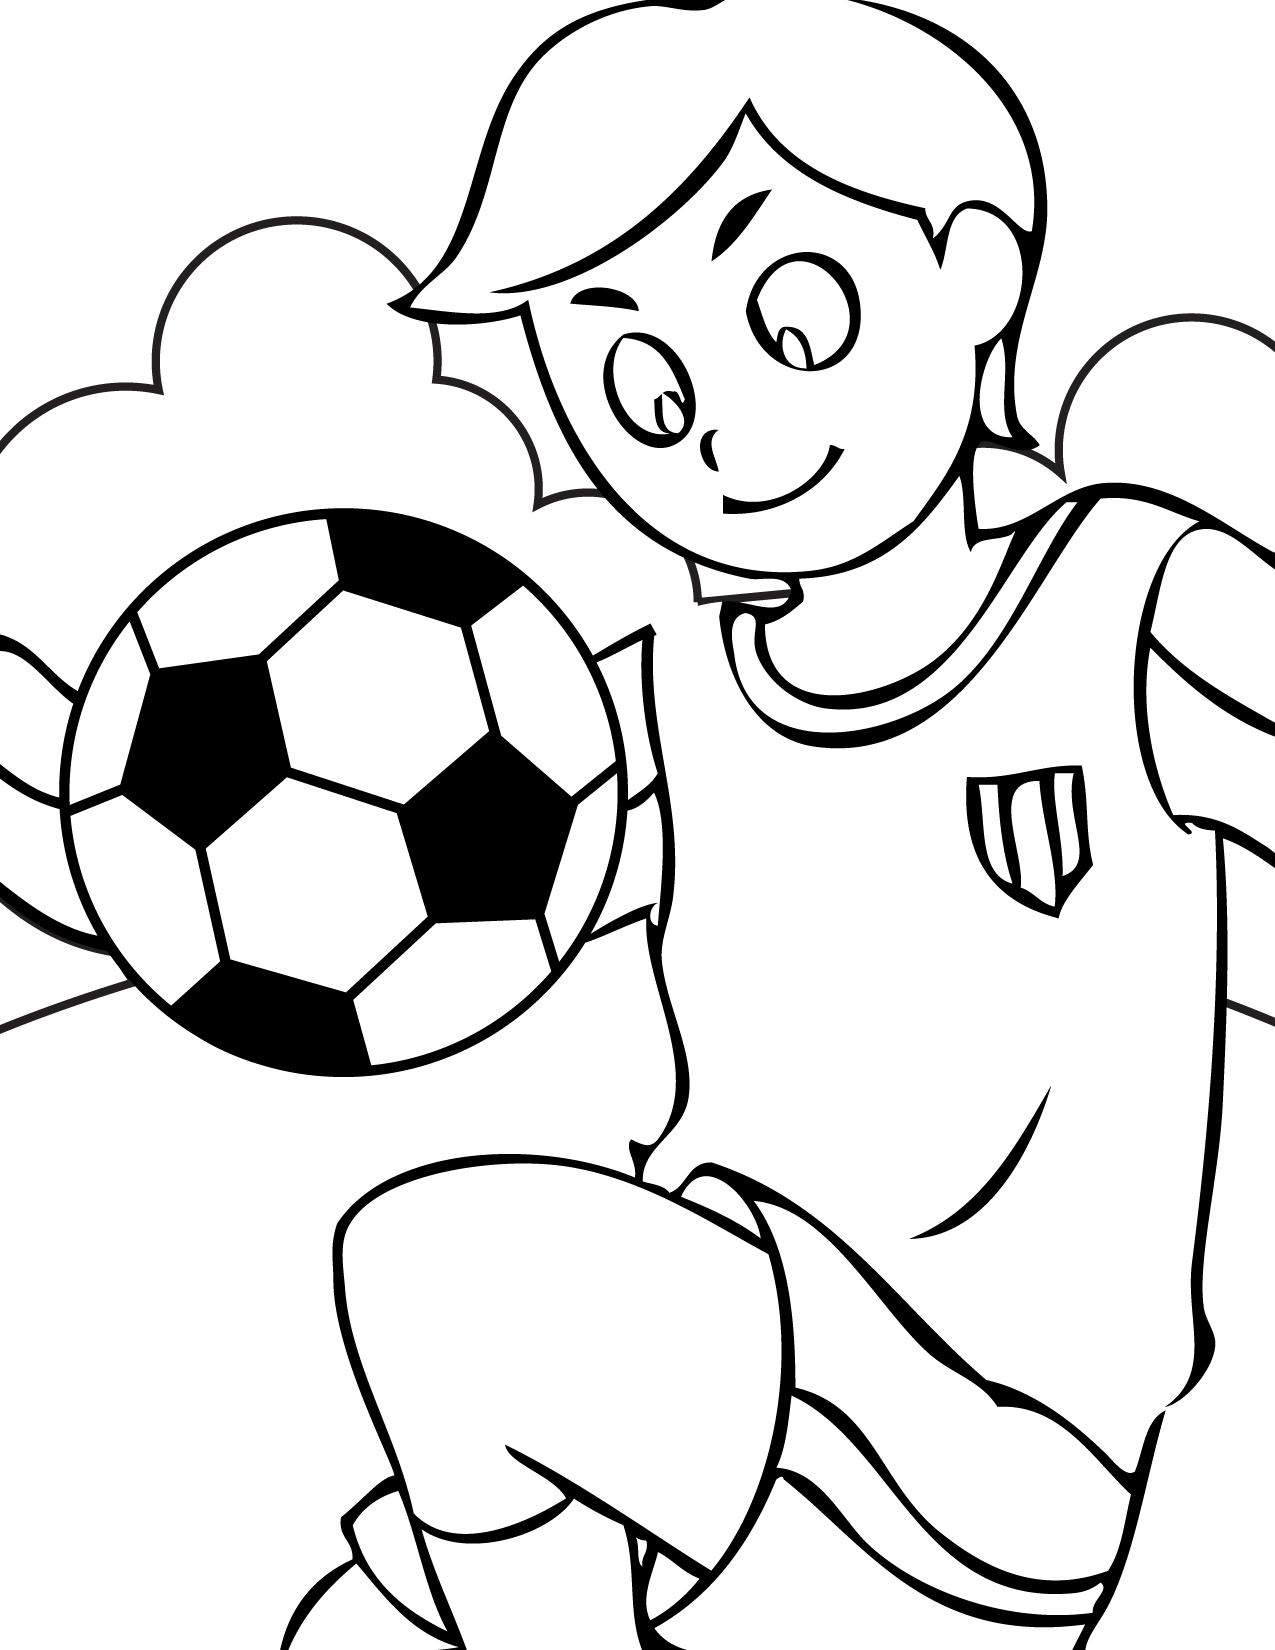 boy sports coloring pages - photo#35